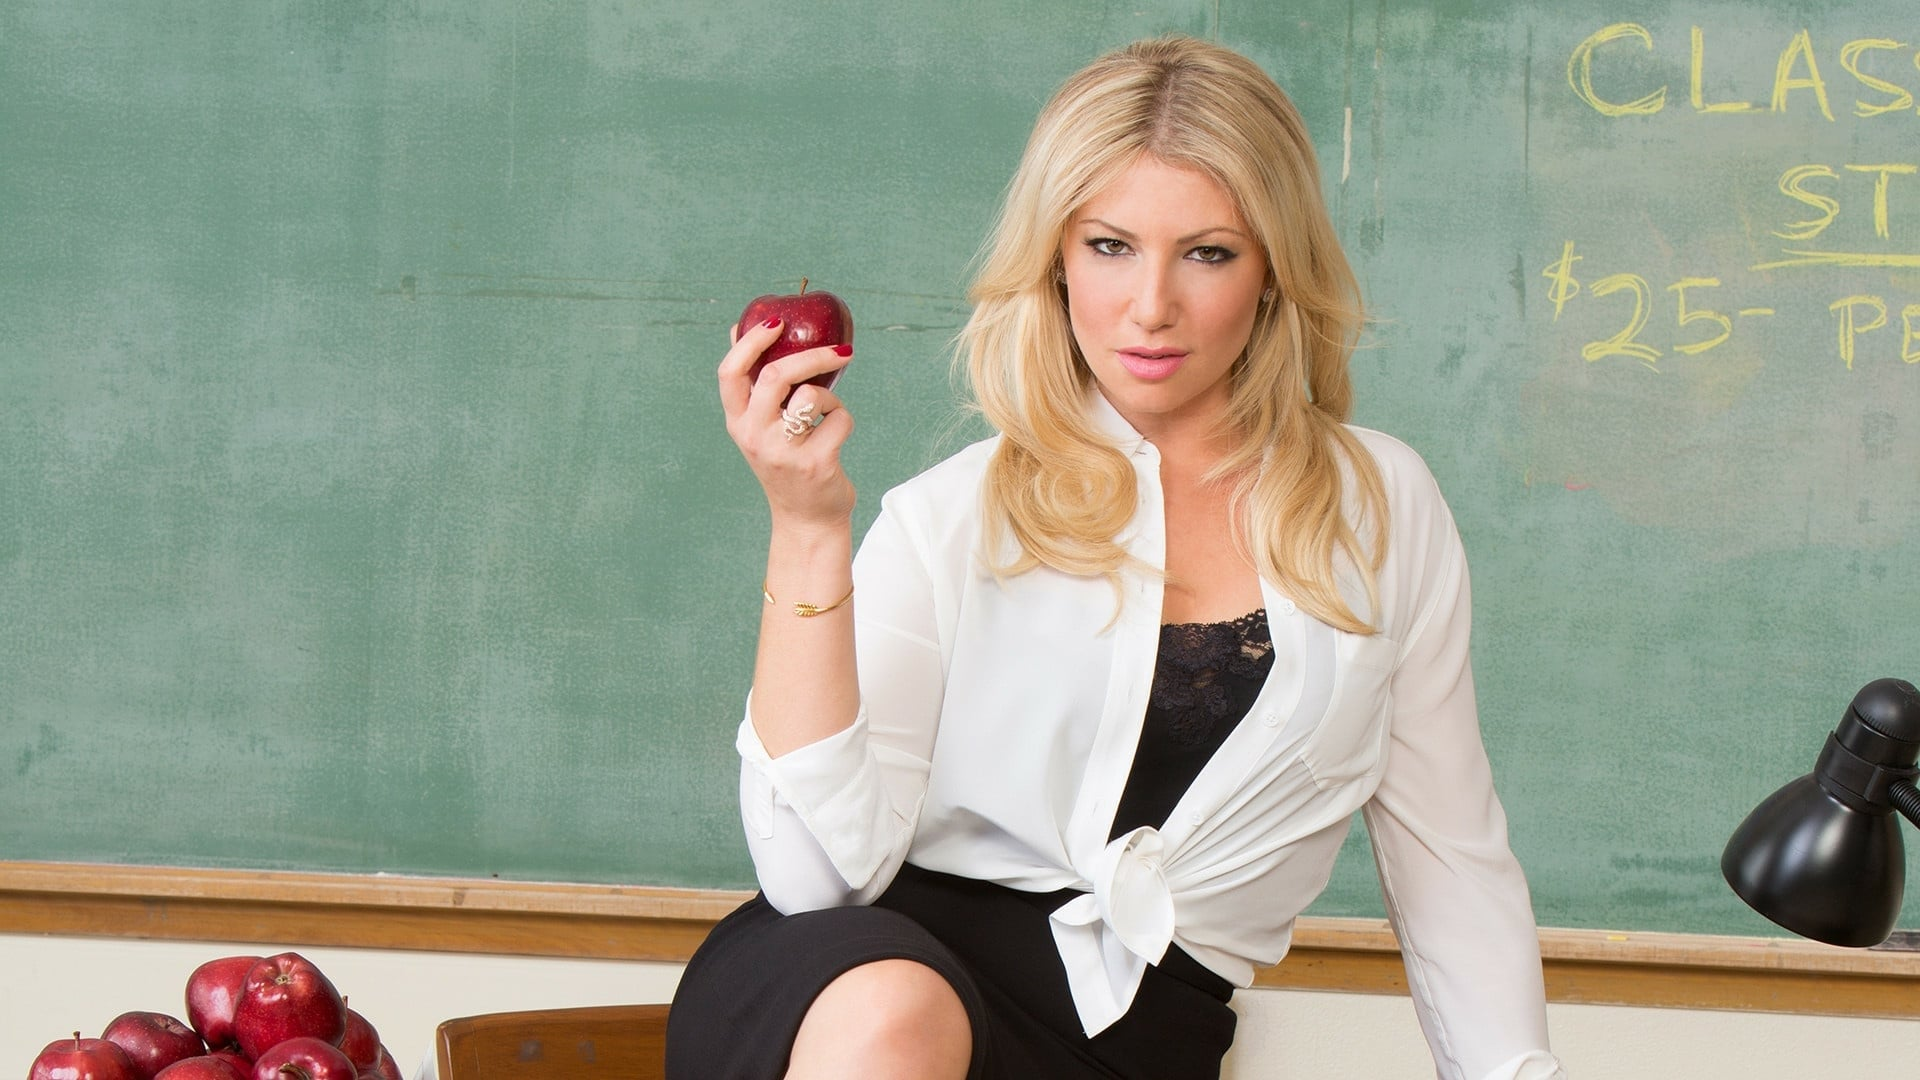 Bad Teacher en Friends with Better Lives direct uit uitzendschema gehaald